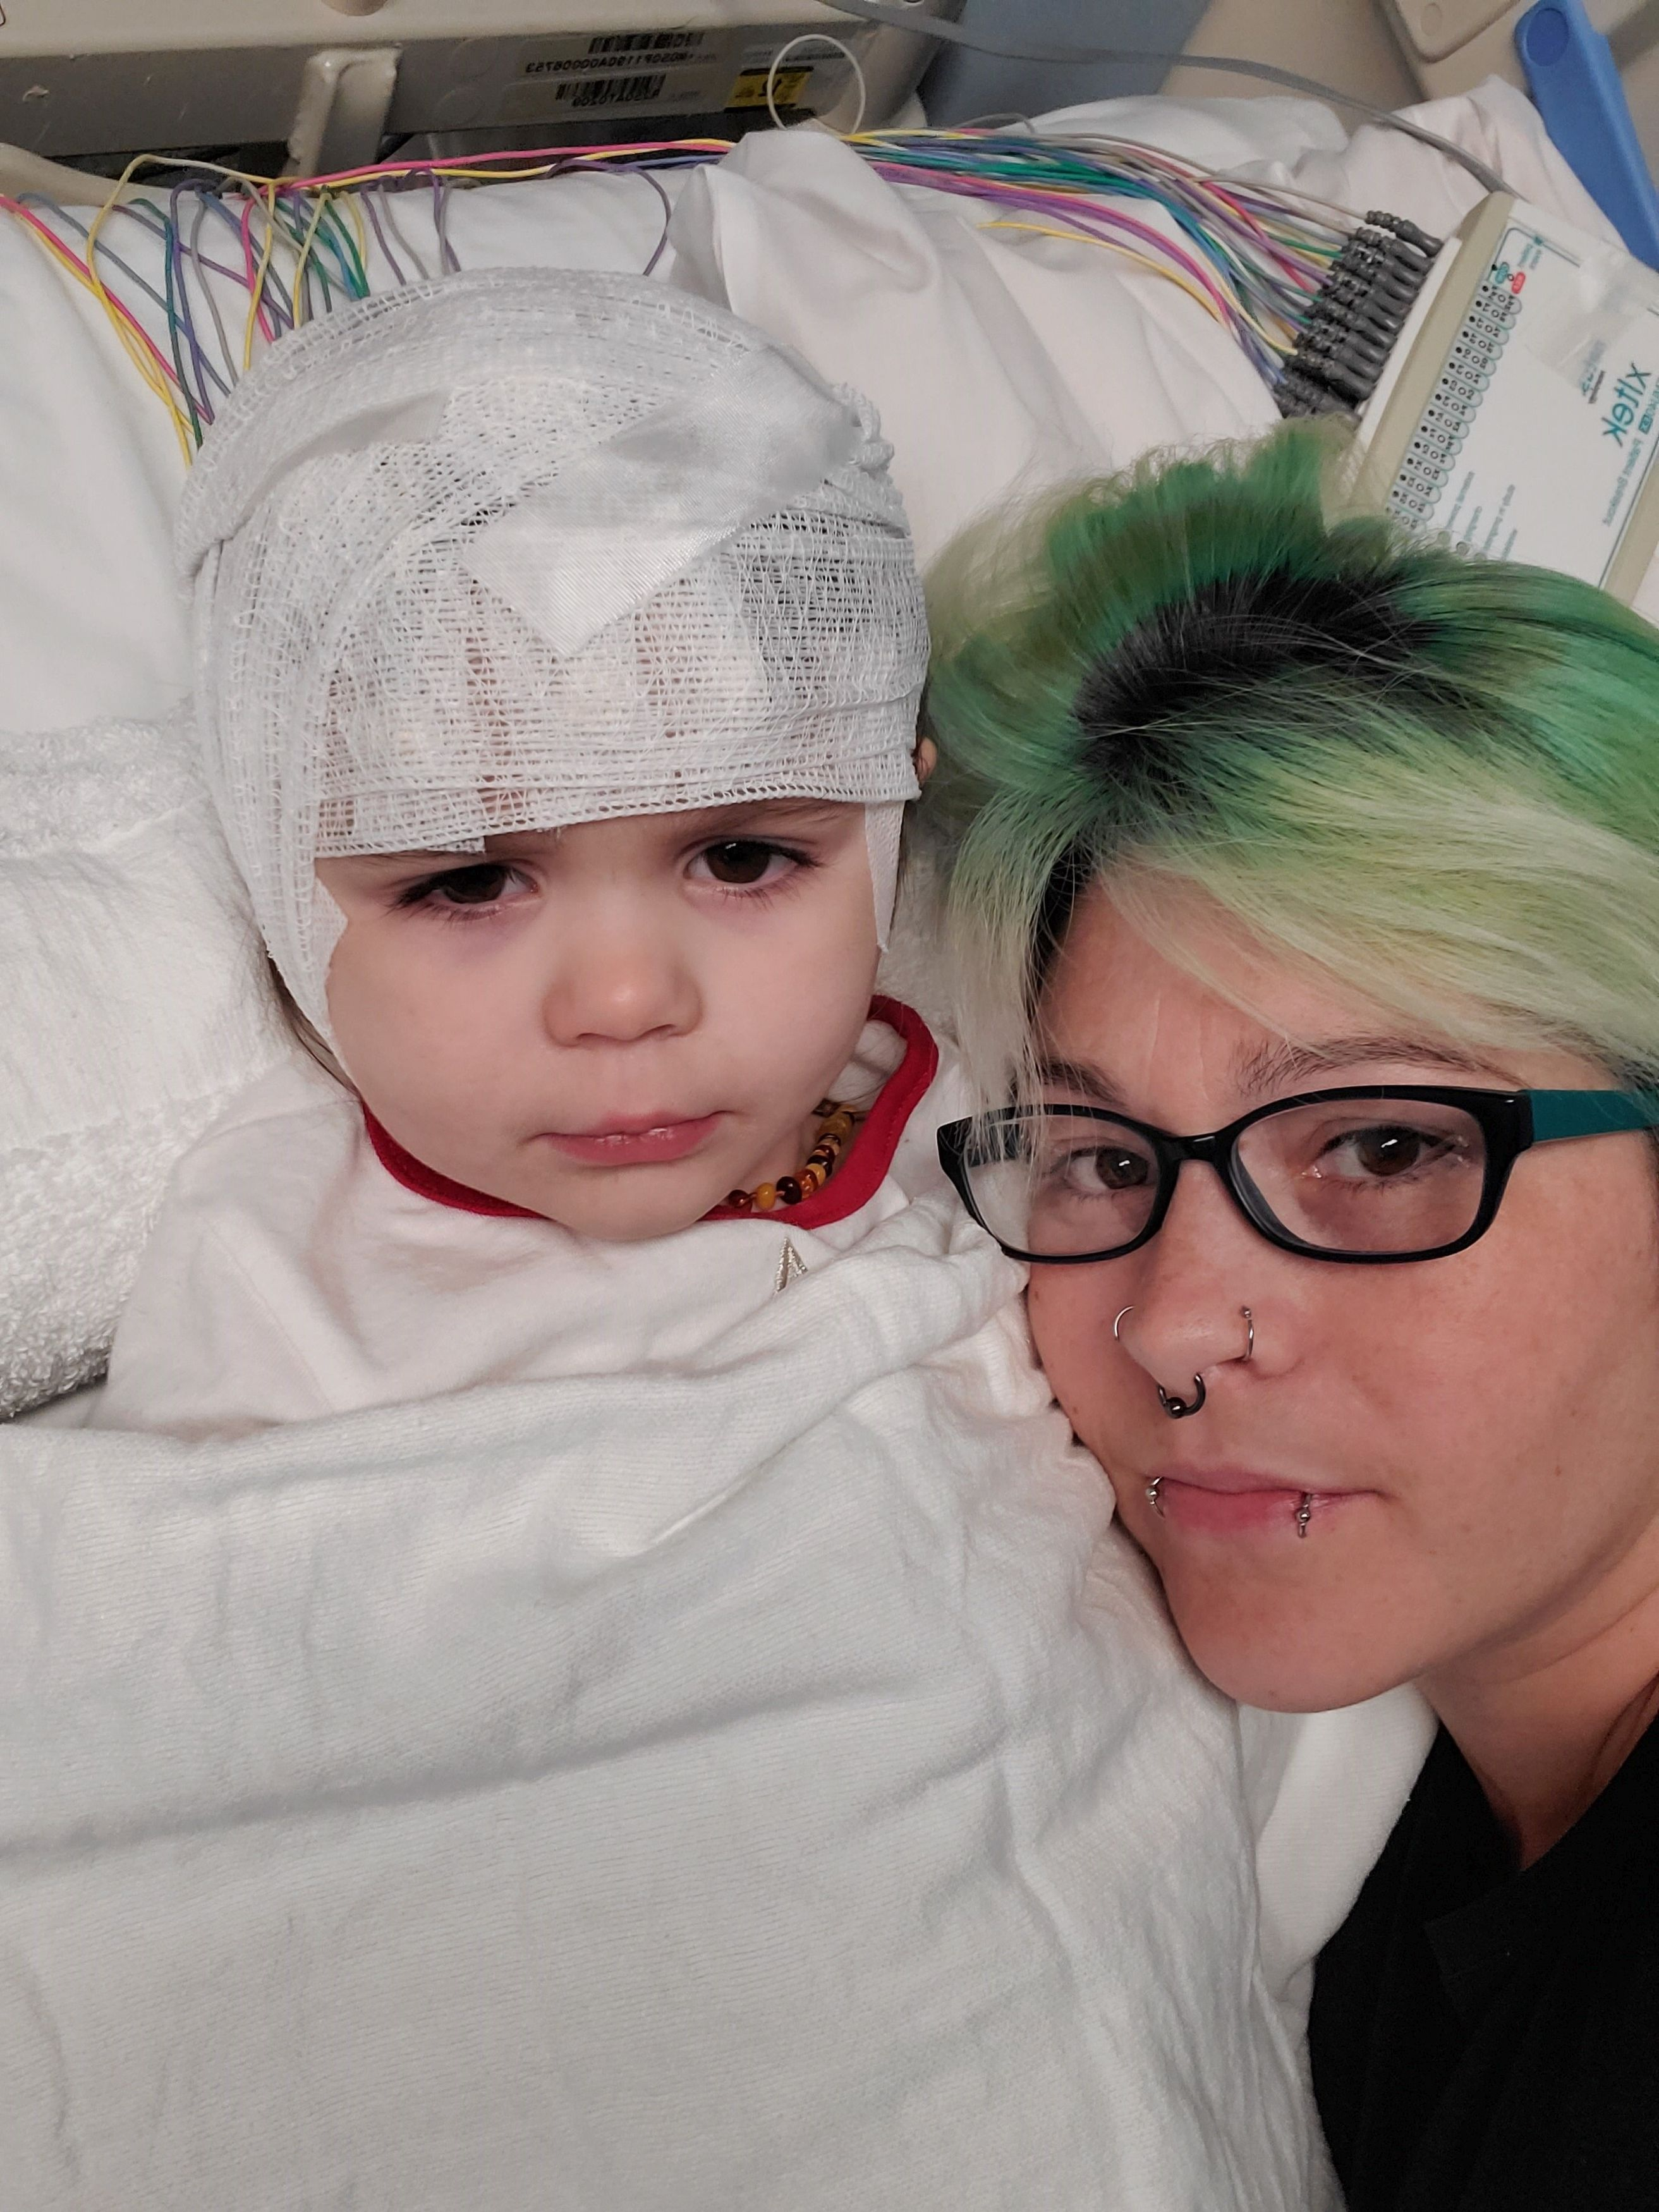 Toddler's Heart Stops Beating Every Time She Gets Upset Due To Rare Condition